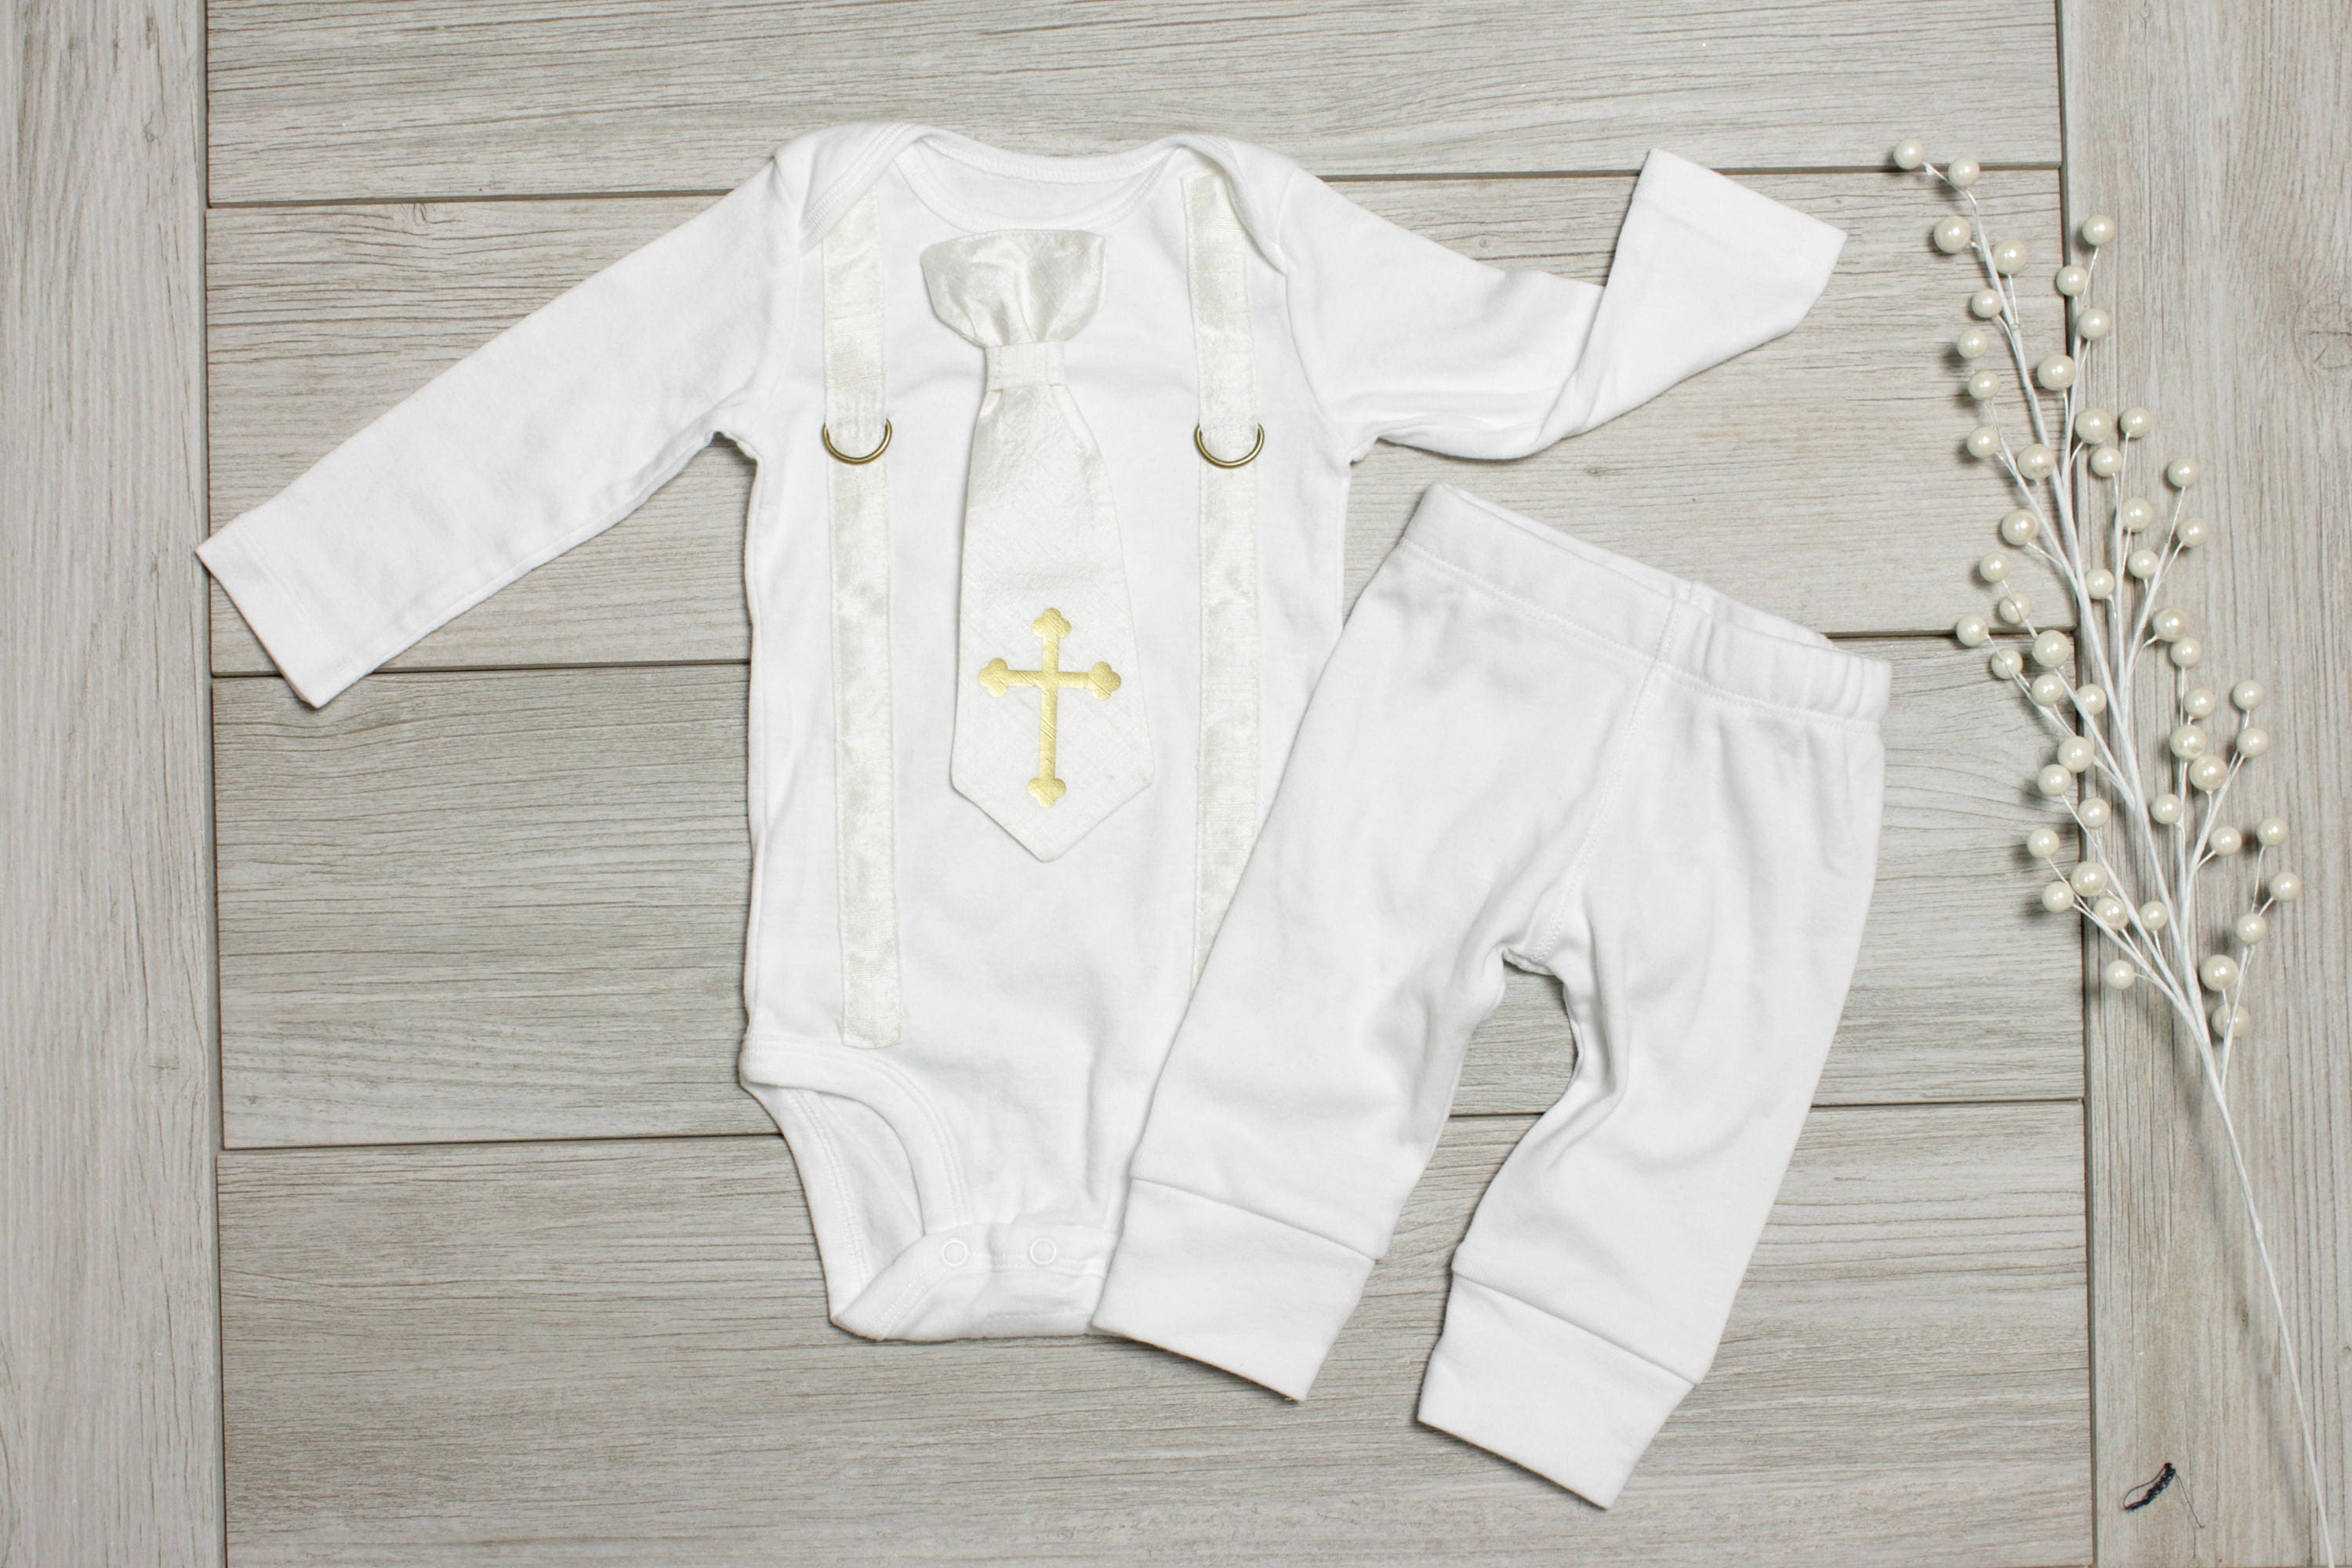 Baby Boy Silk Baptism Christening Outfit All white and gold